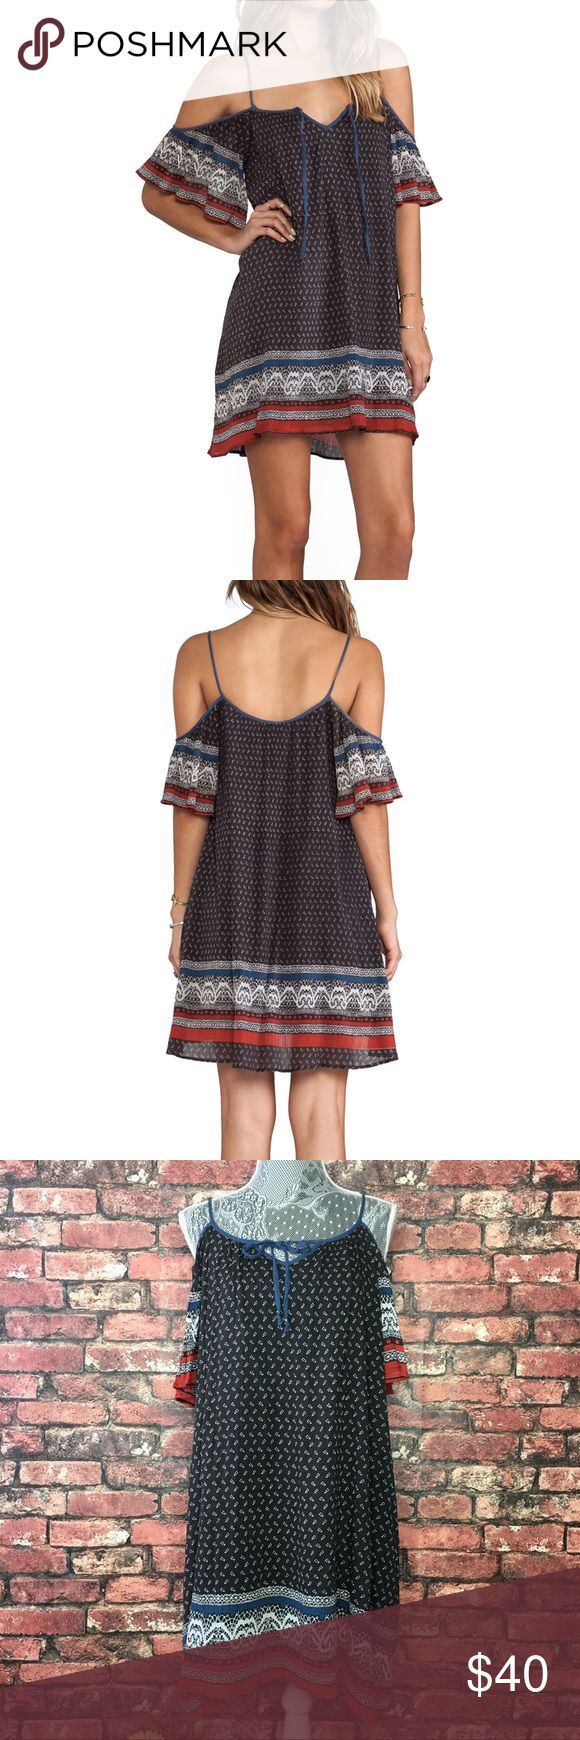 Free People Printed Cold Shoulder Bohemian Dress The perfect dress for festivals or a nice sunny day. Adjustable straps. In great condition. Bust 19in Length 30in (Measured from chest) Free People Dresses